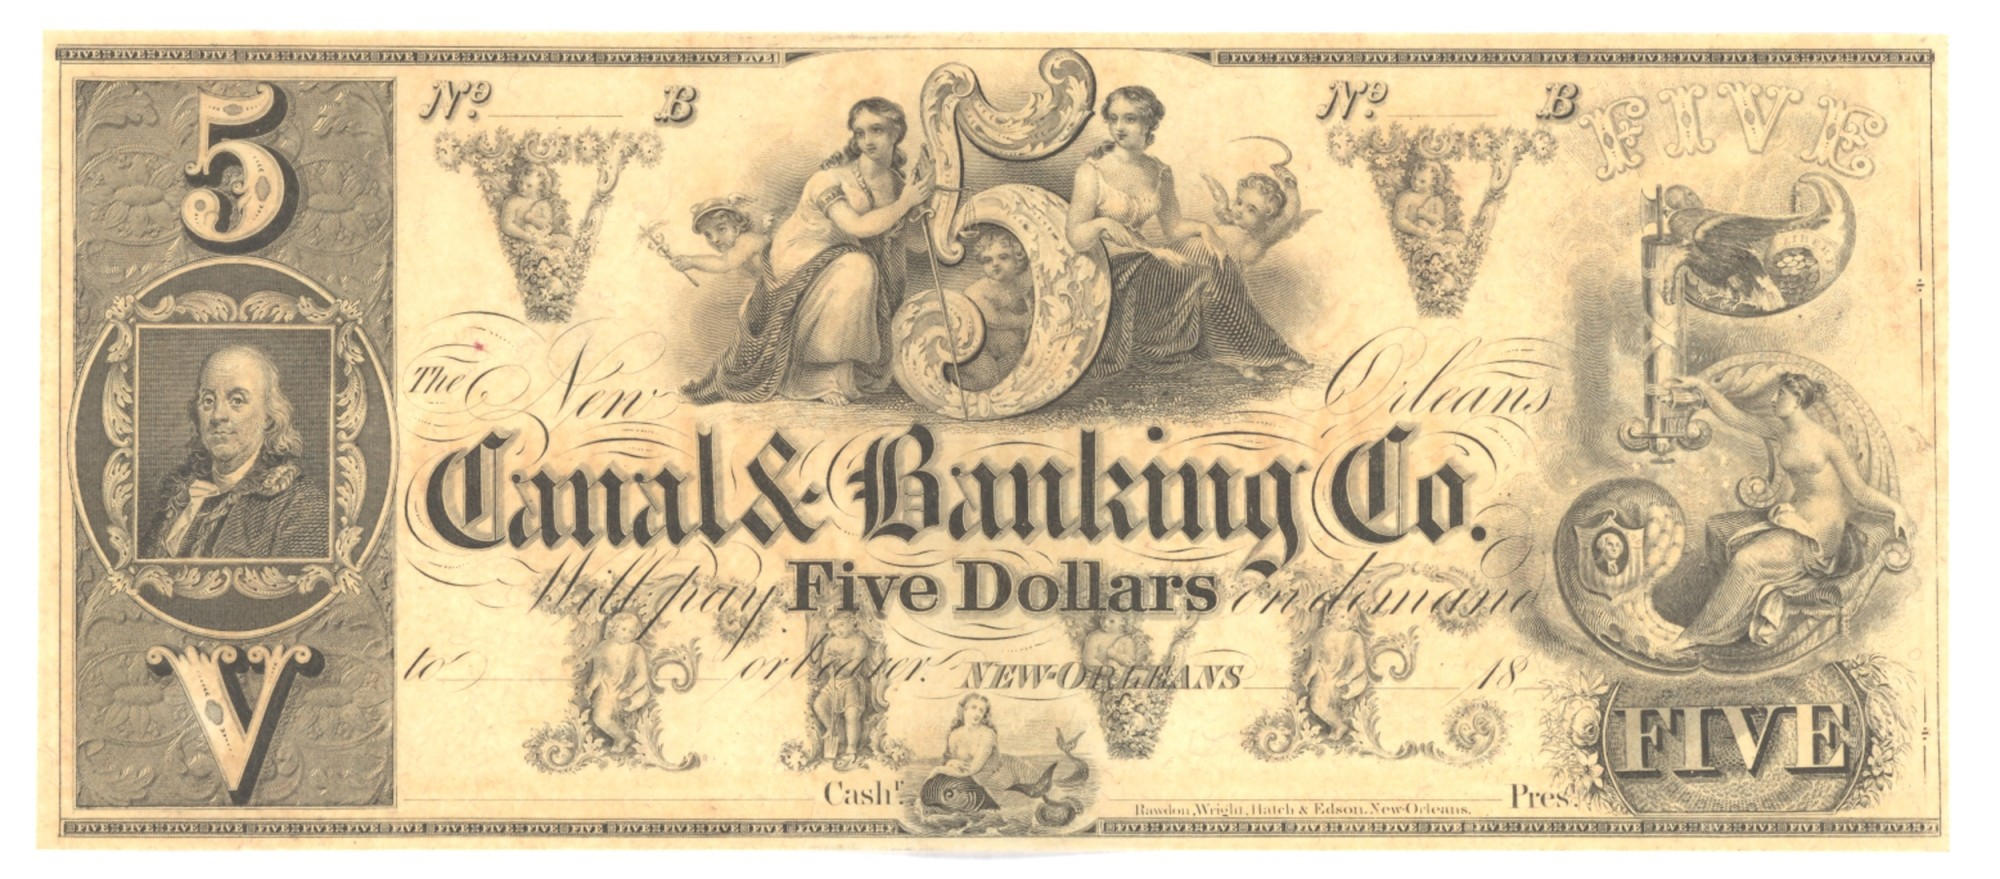 CANAL BANK, LOUISIANA, $5 NOTE